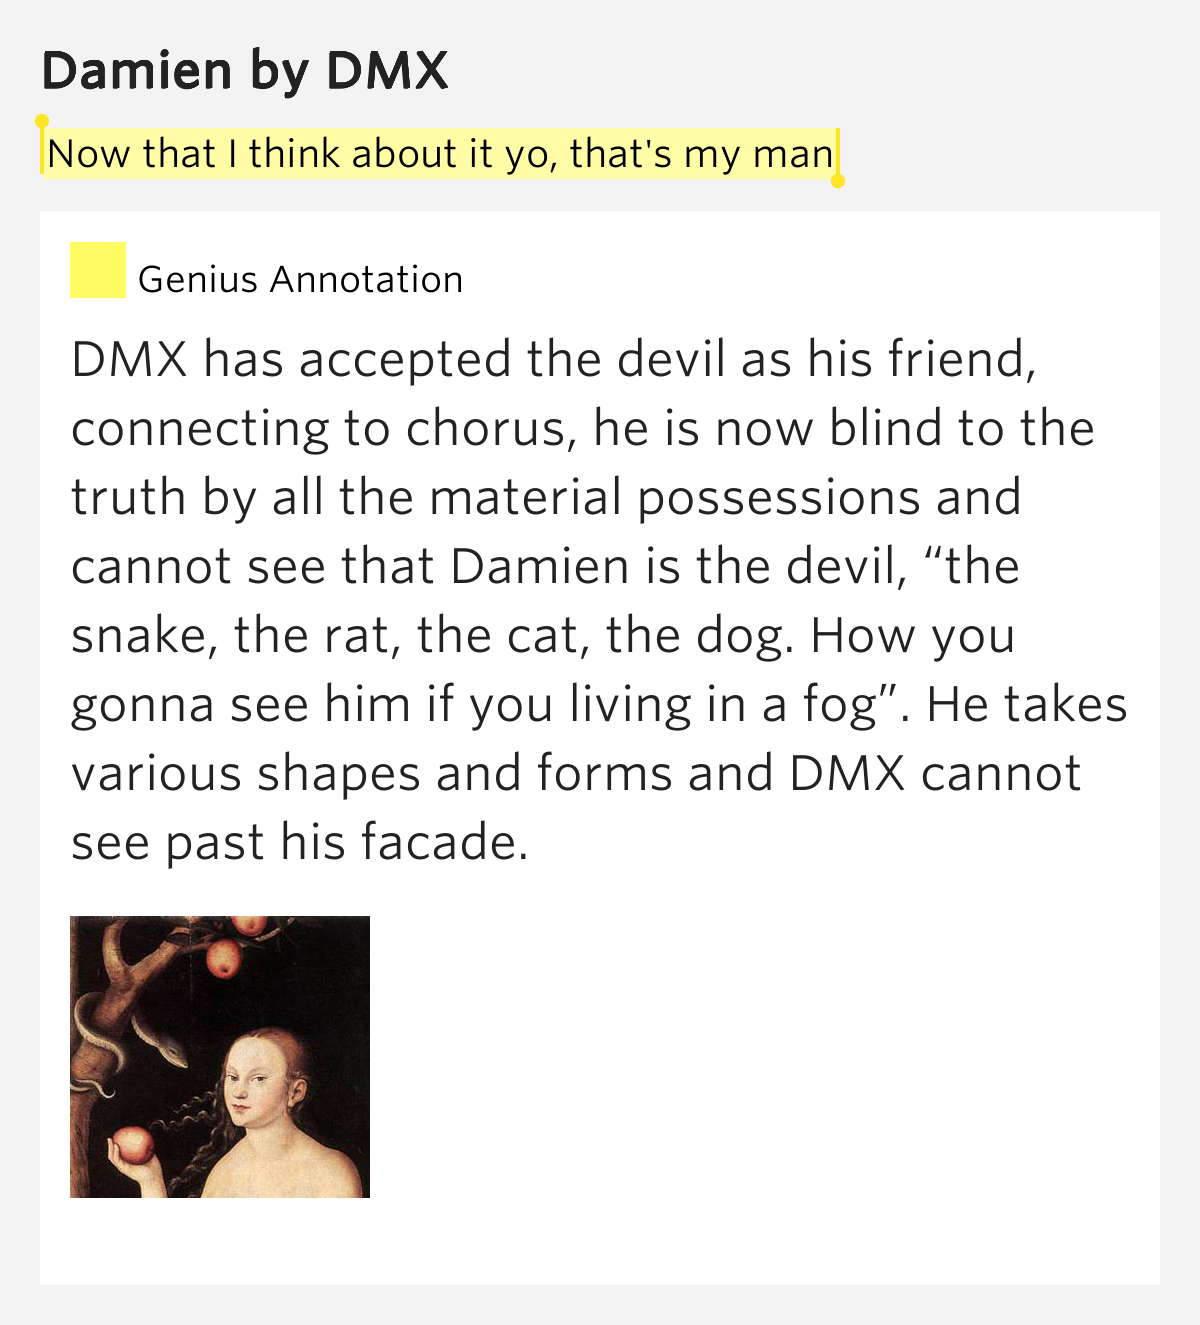 The Snake The Rat The Cat The Dog Dmx